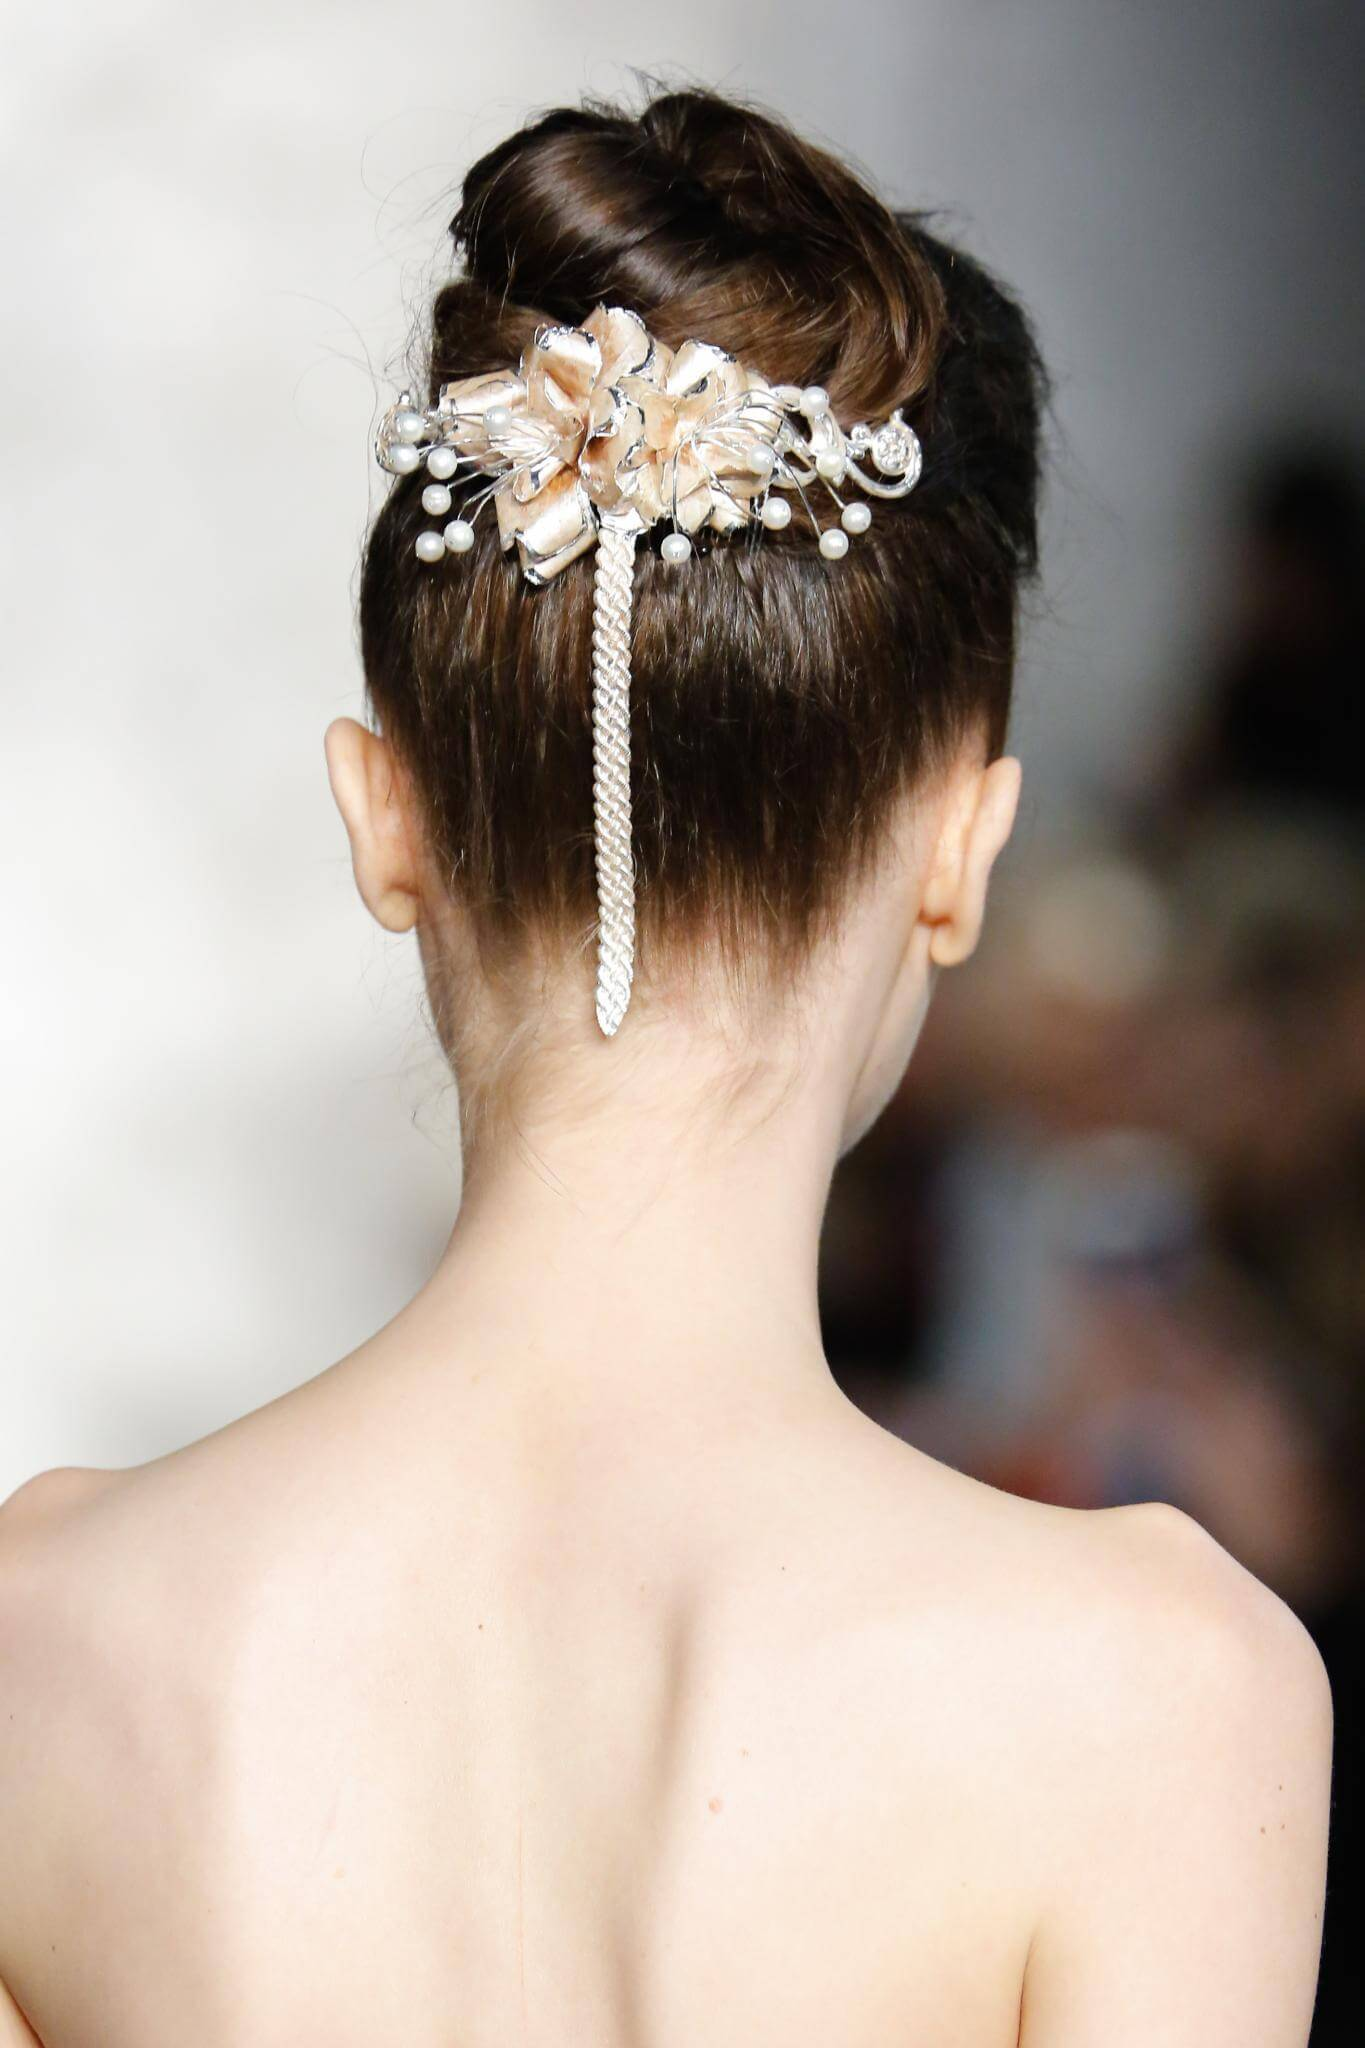 ribbon hair accessory trend for weddings